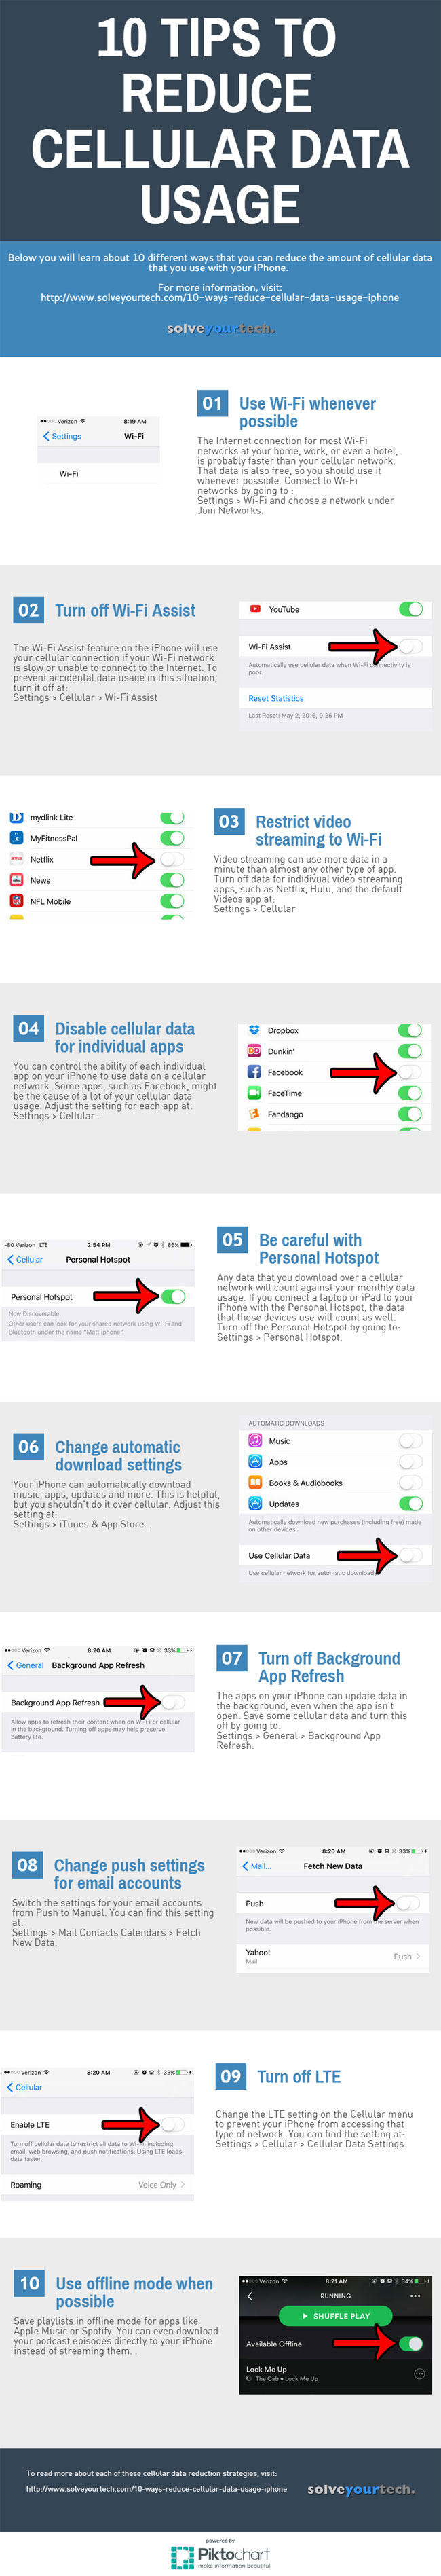 solveyourtech-10-ways-reduce-cellular-data-usage-sm